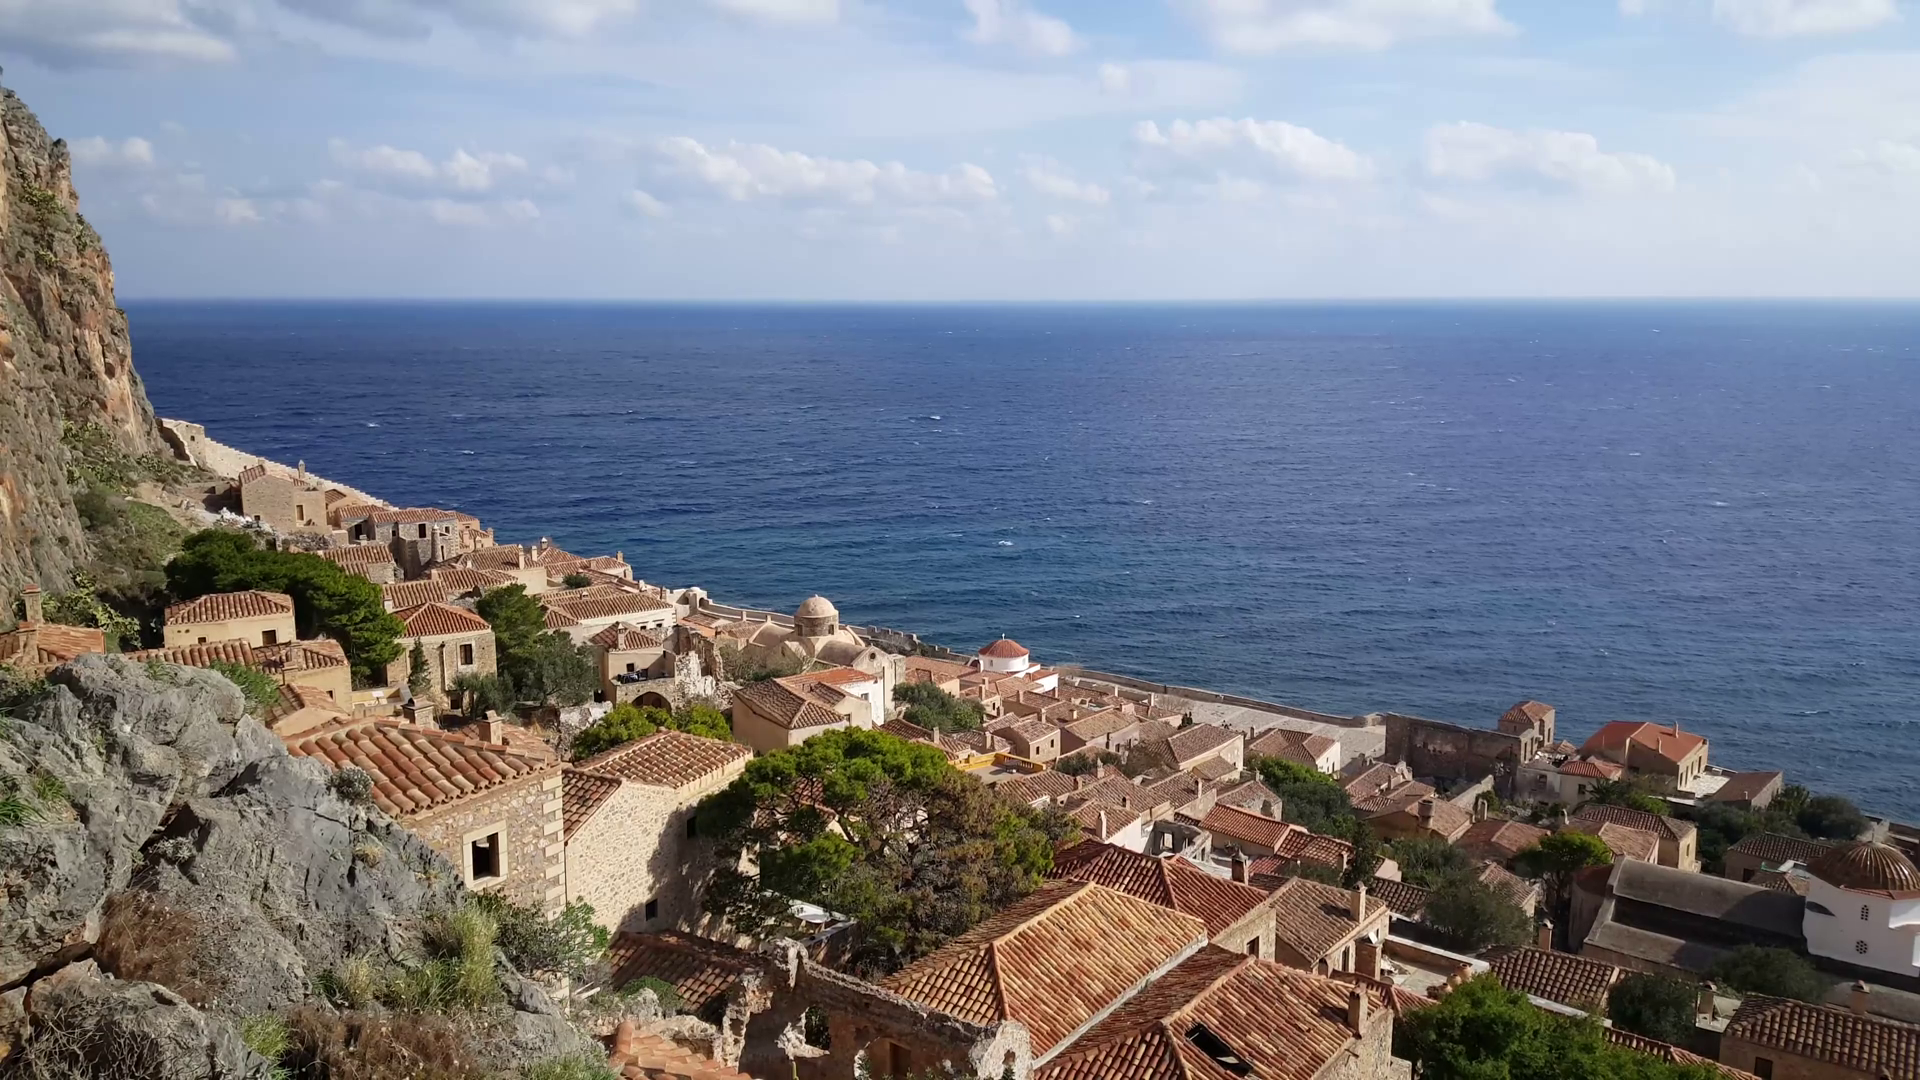 Houses in the village Monemvasia Greece Stock Video Footage 1920x1080